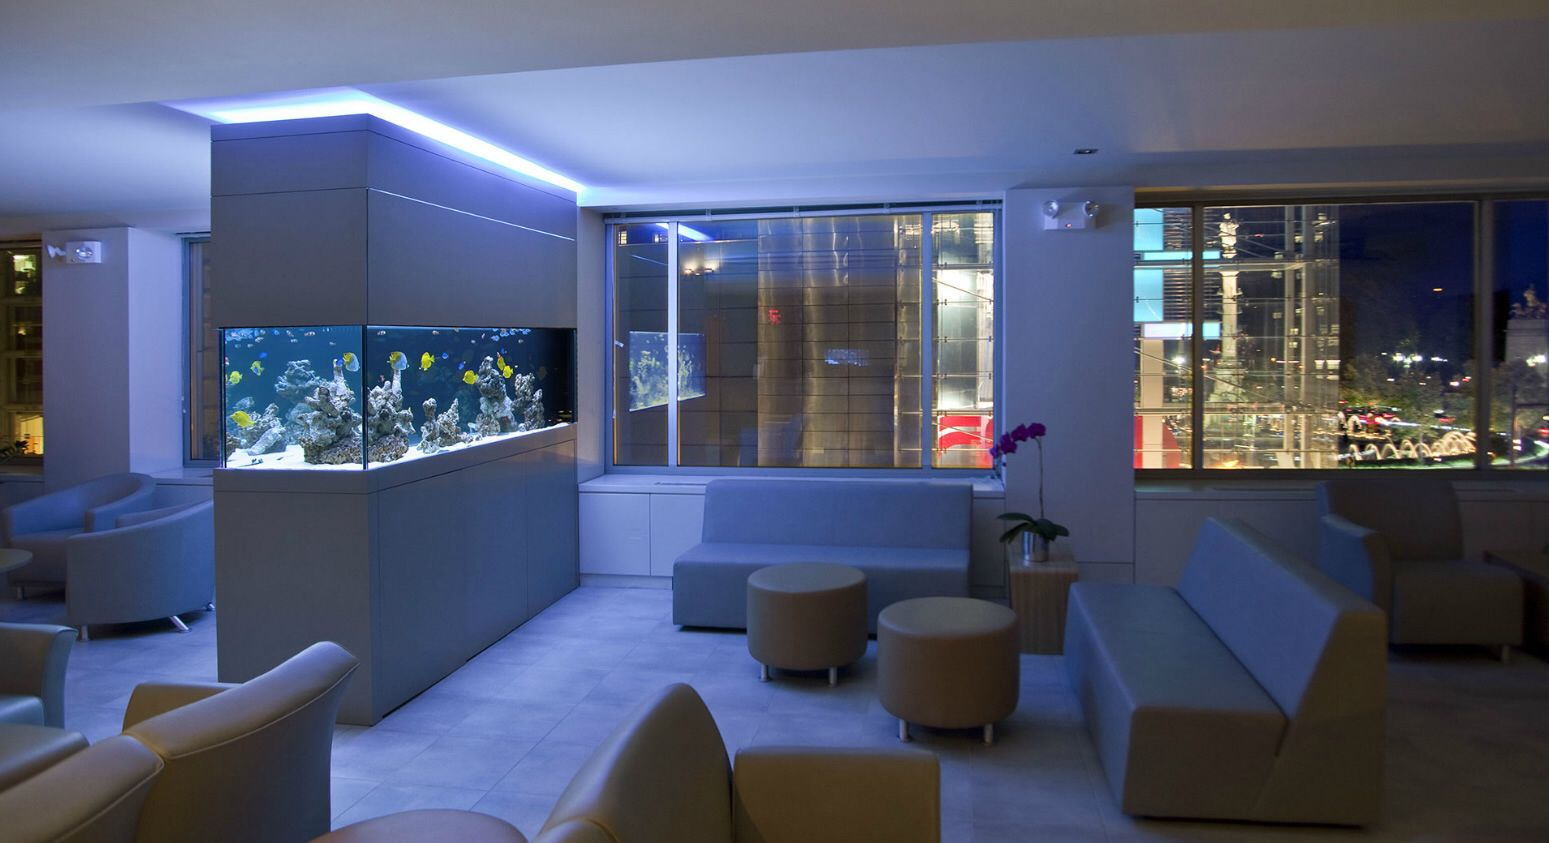 Image From Http Glass Fish Tanks Com Wp Content Uploads